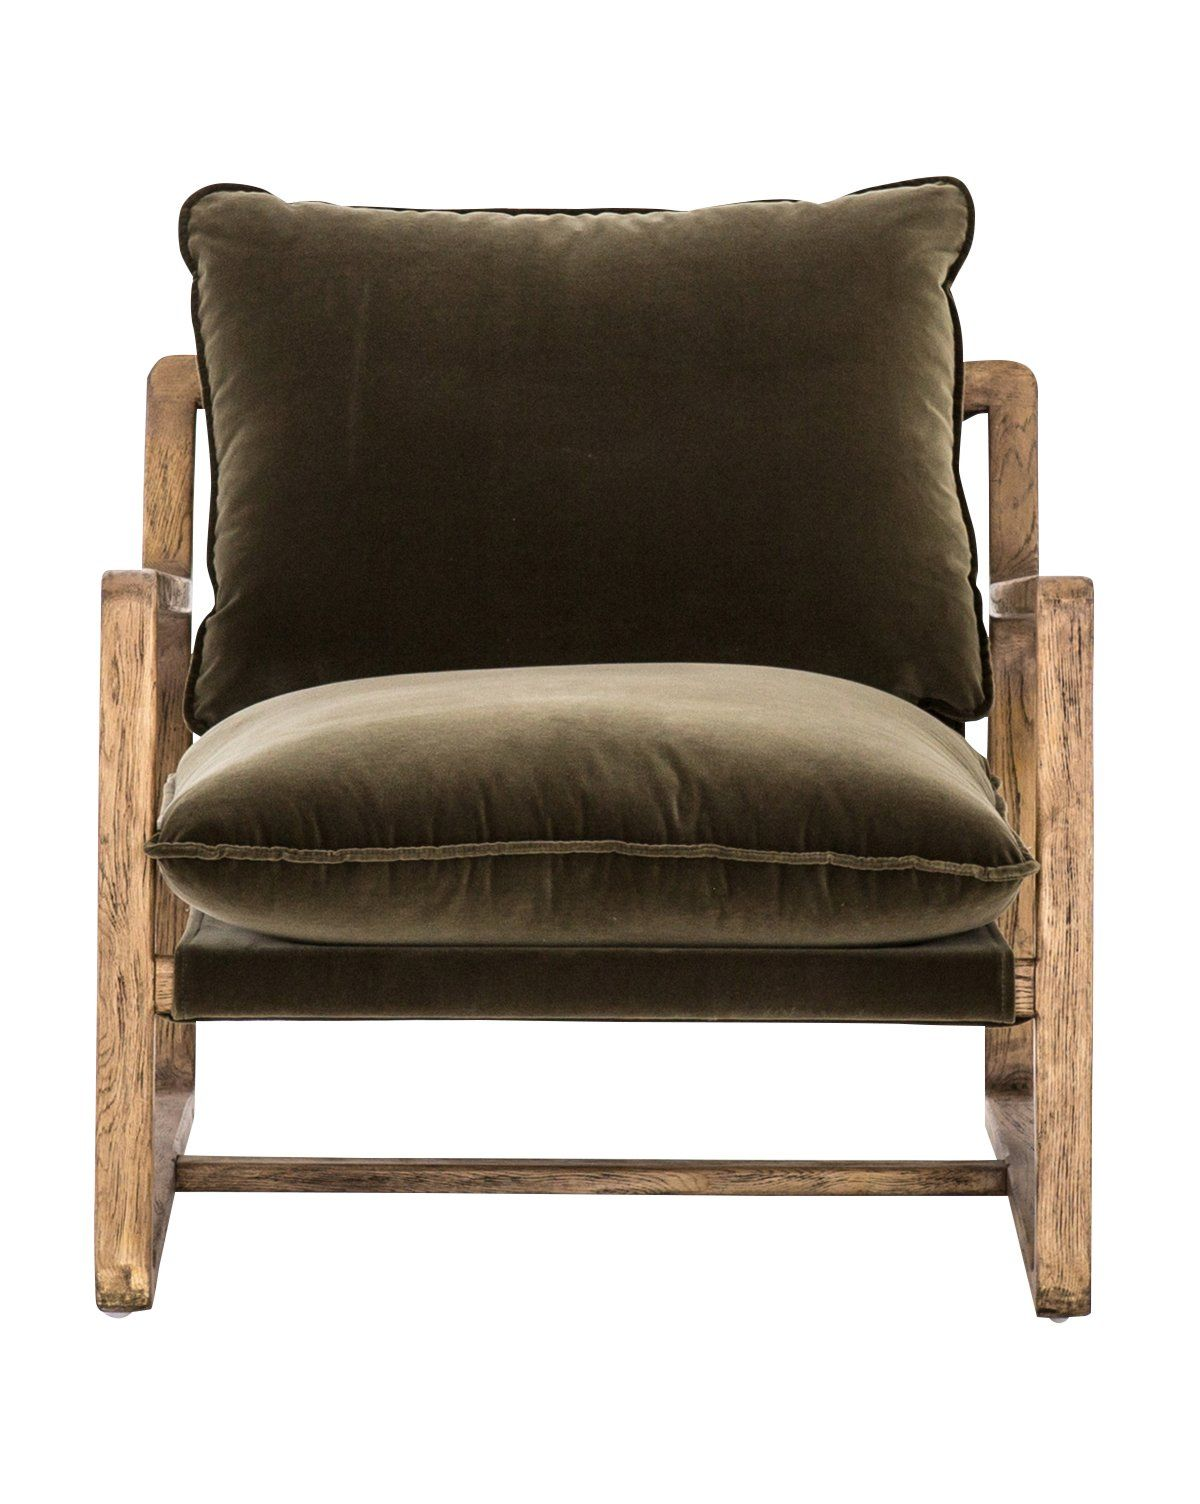 Chairs mcgee co olive green chair accent